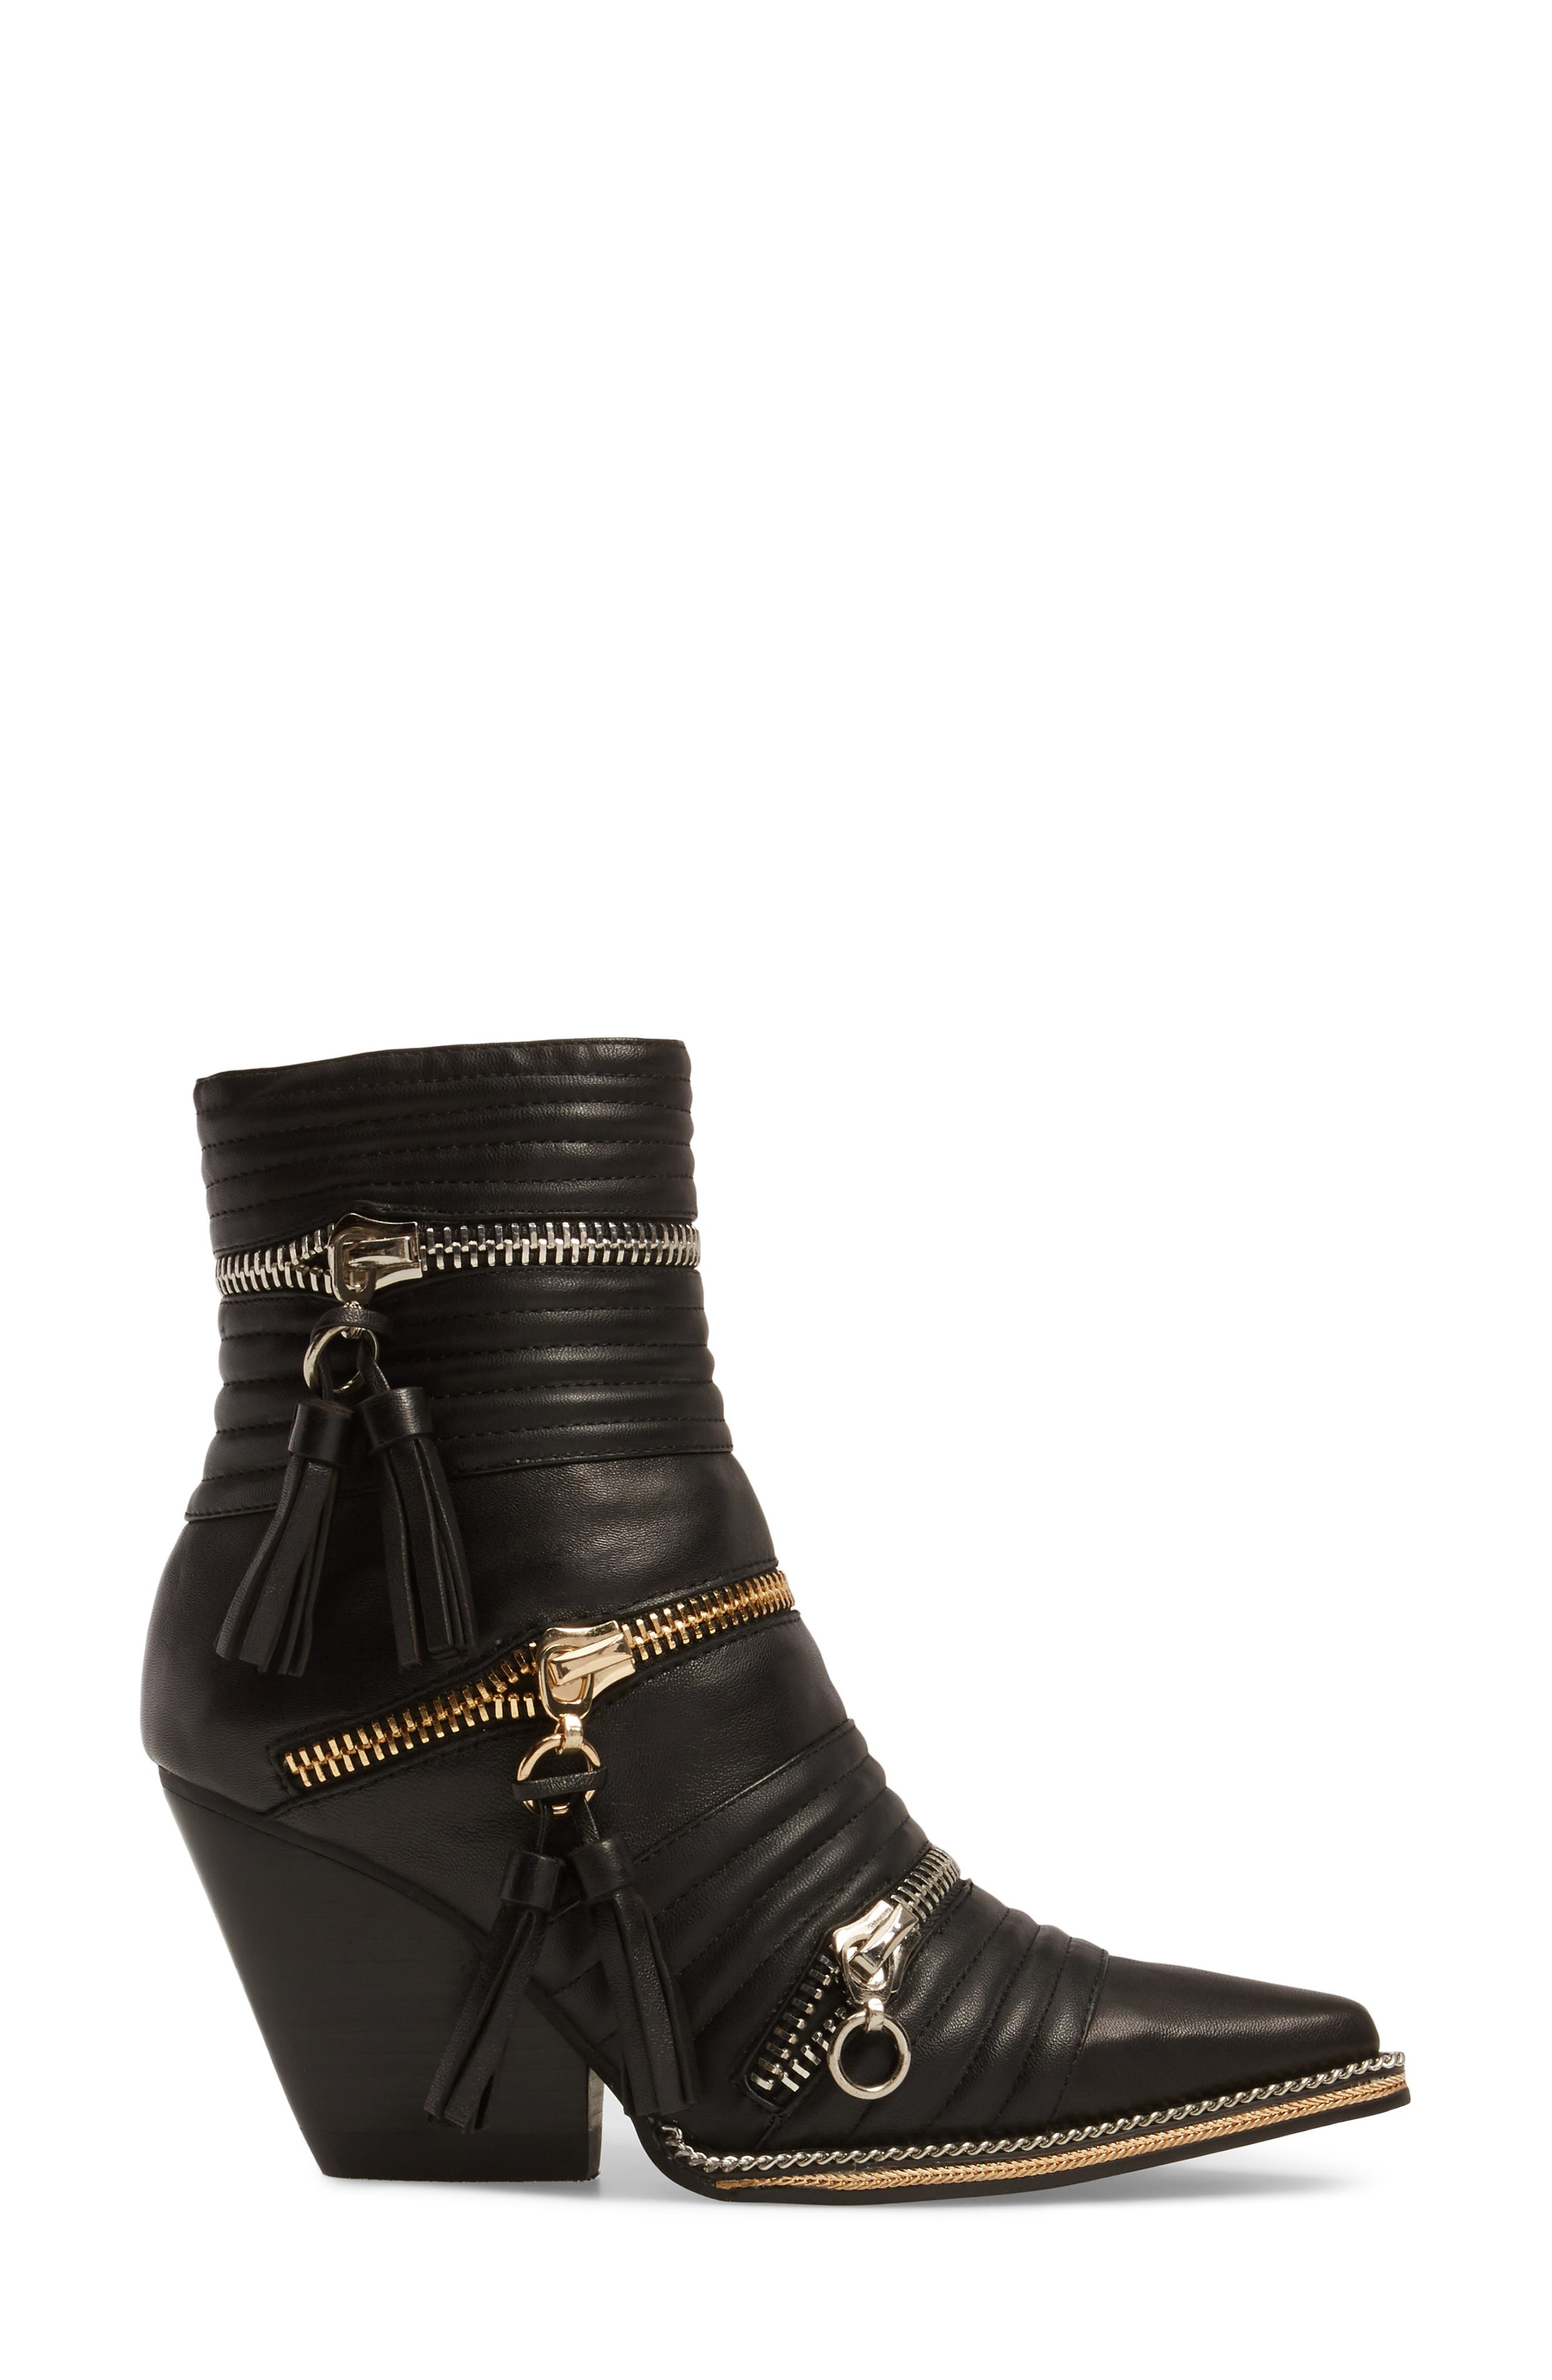 Tenzin Chain Pointy Toe Boot,                             Alternate thumbnail 3, color,                             001